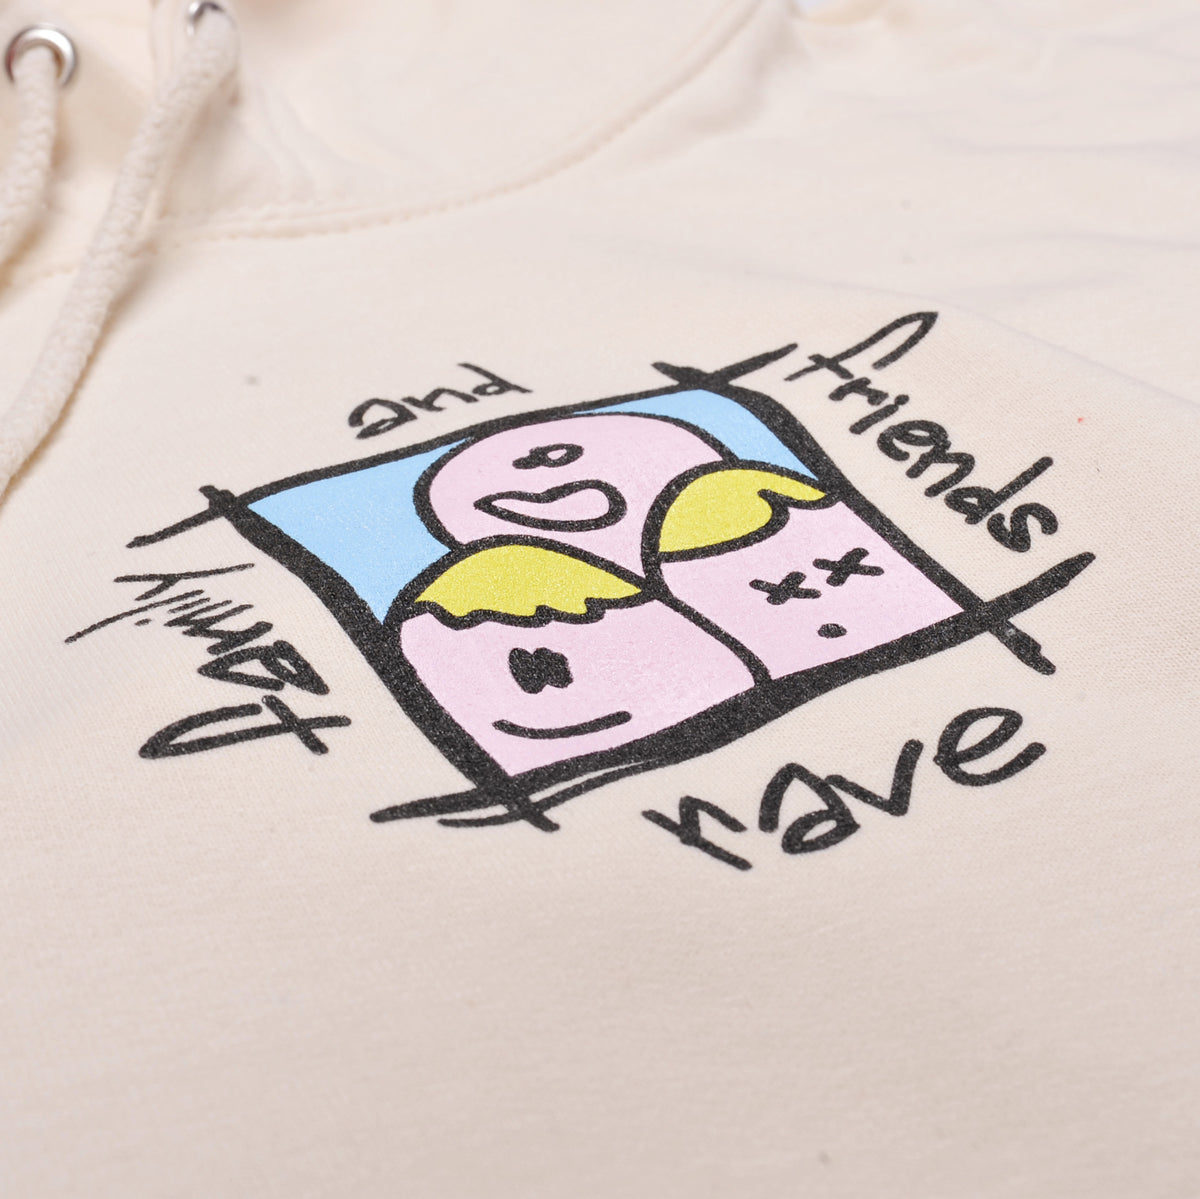 FAMILY & FRIENDS cream hoodie - RAVE skateboards